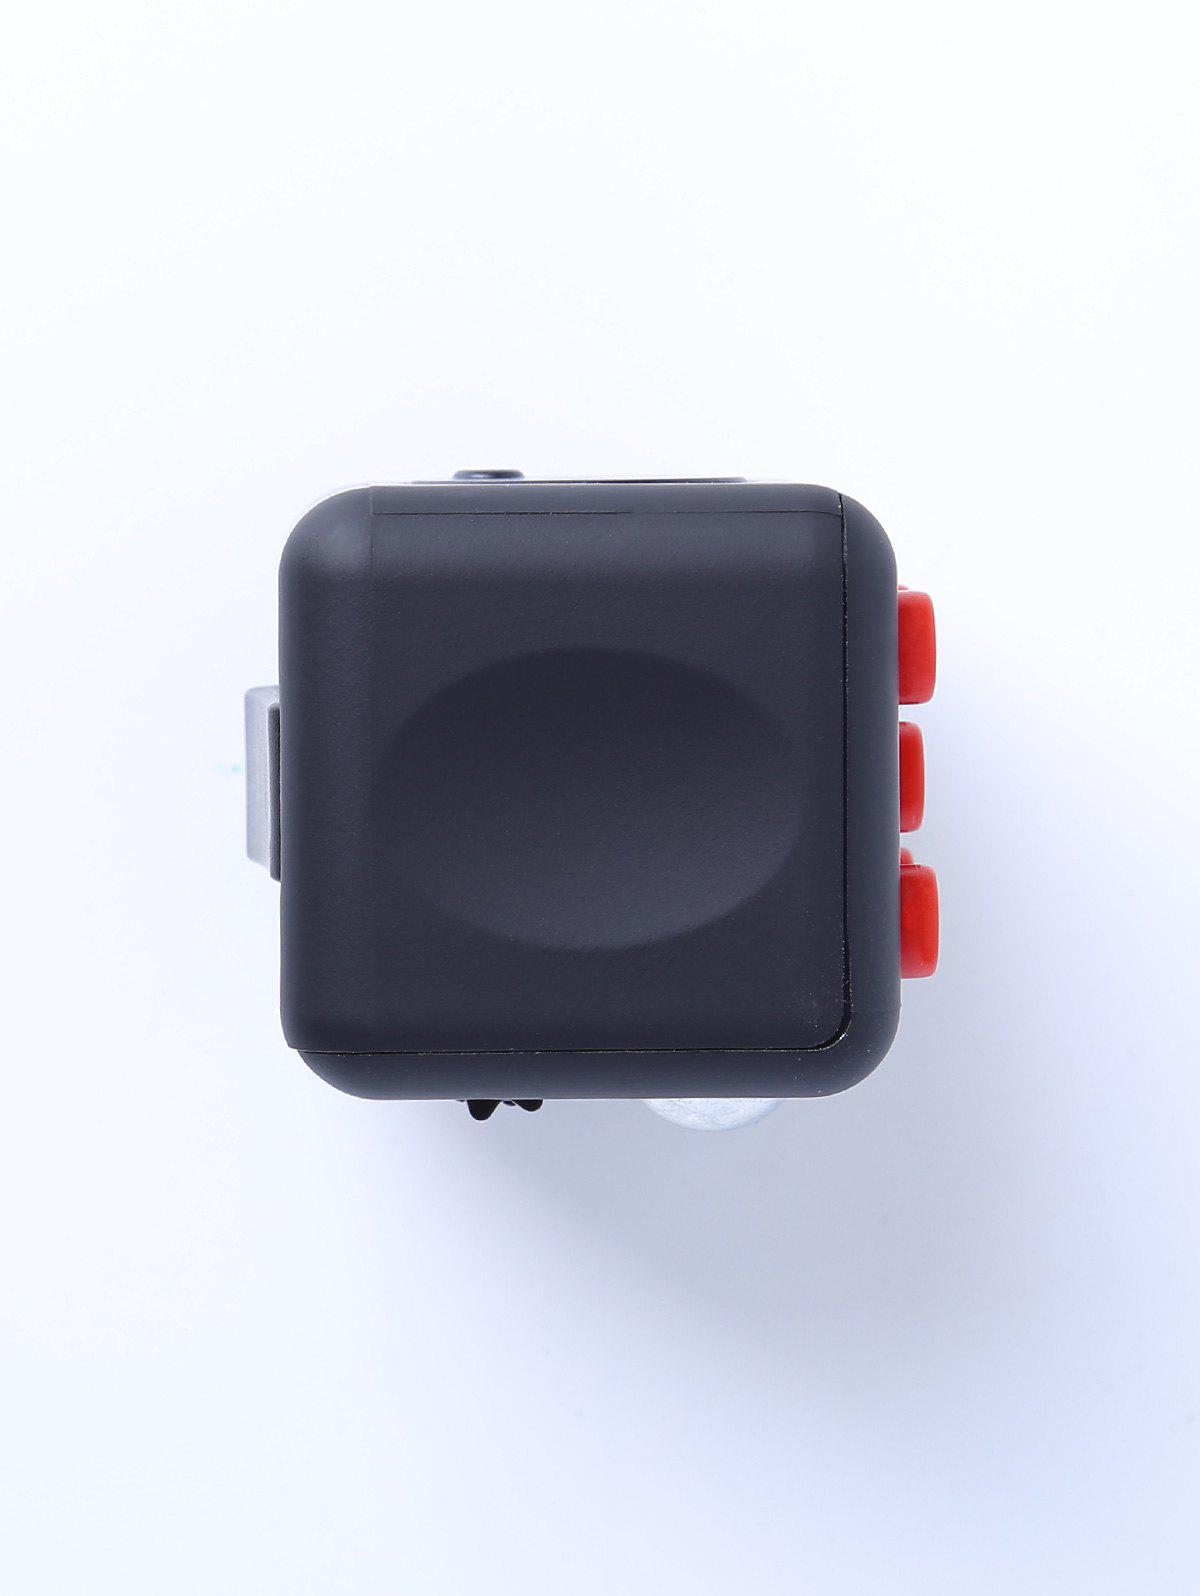 Relieving Stress Squeeze Cube Finger Toy - BLACK